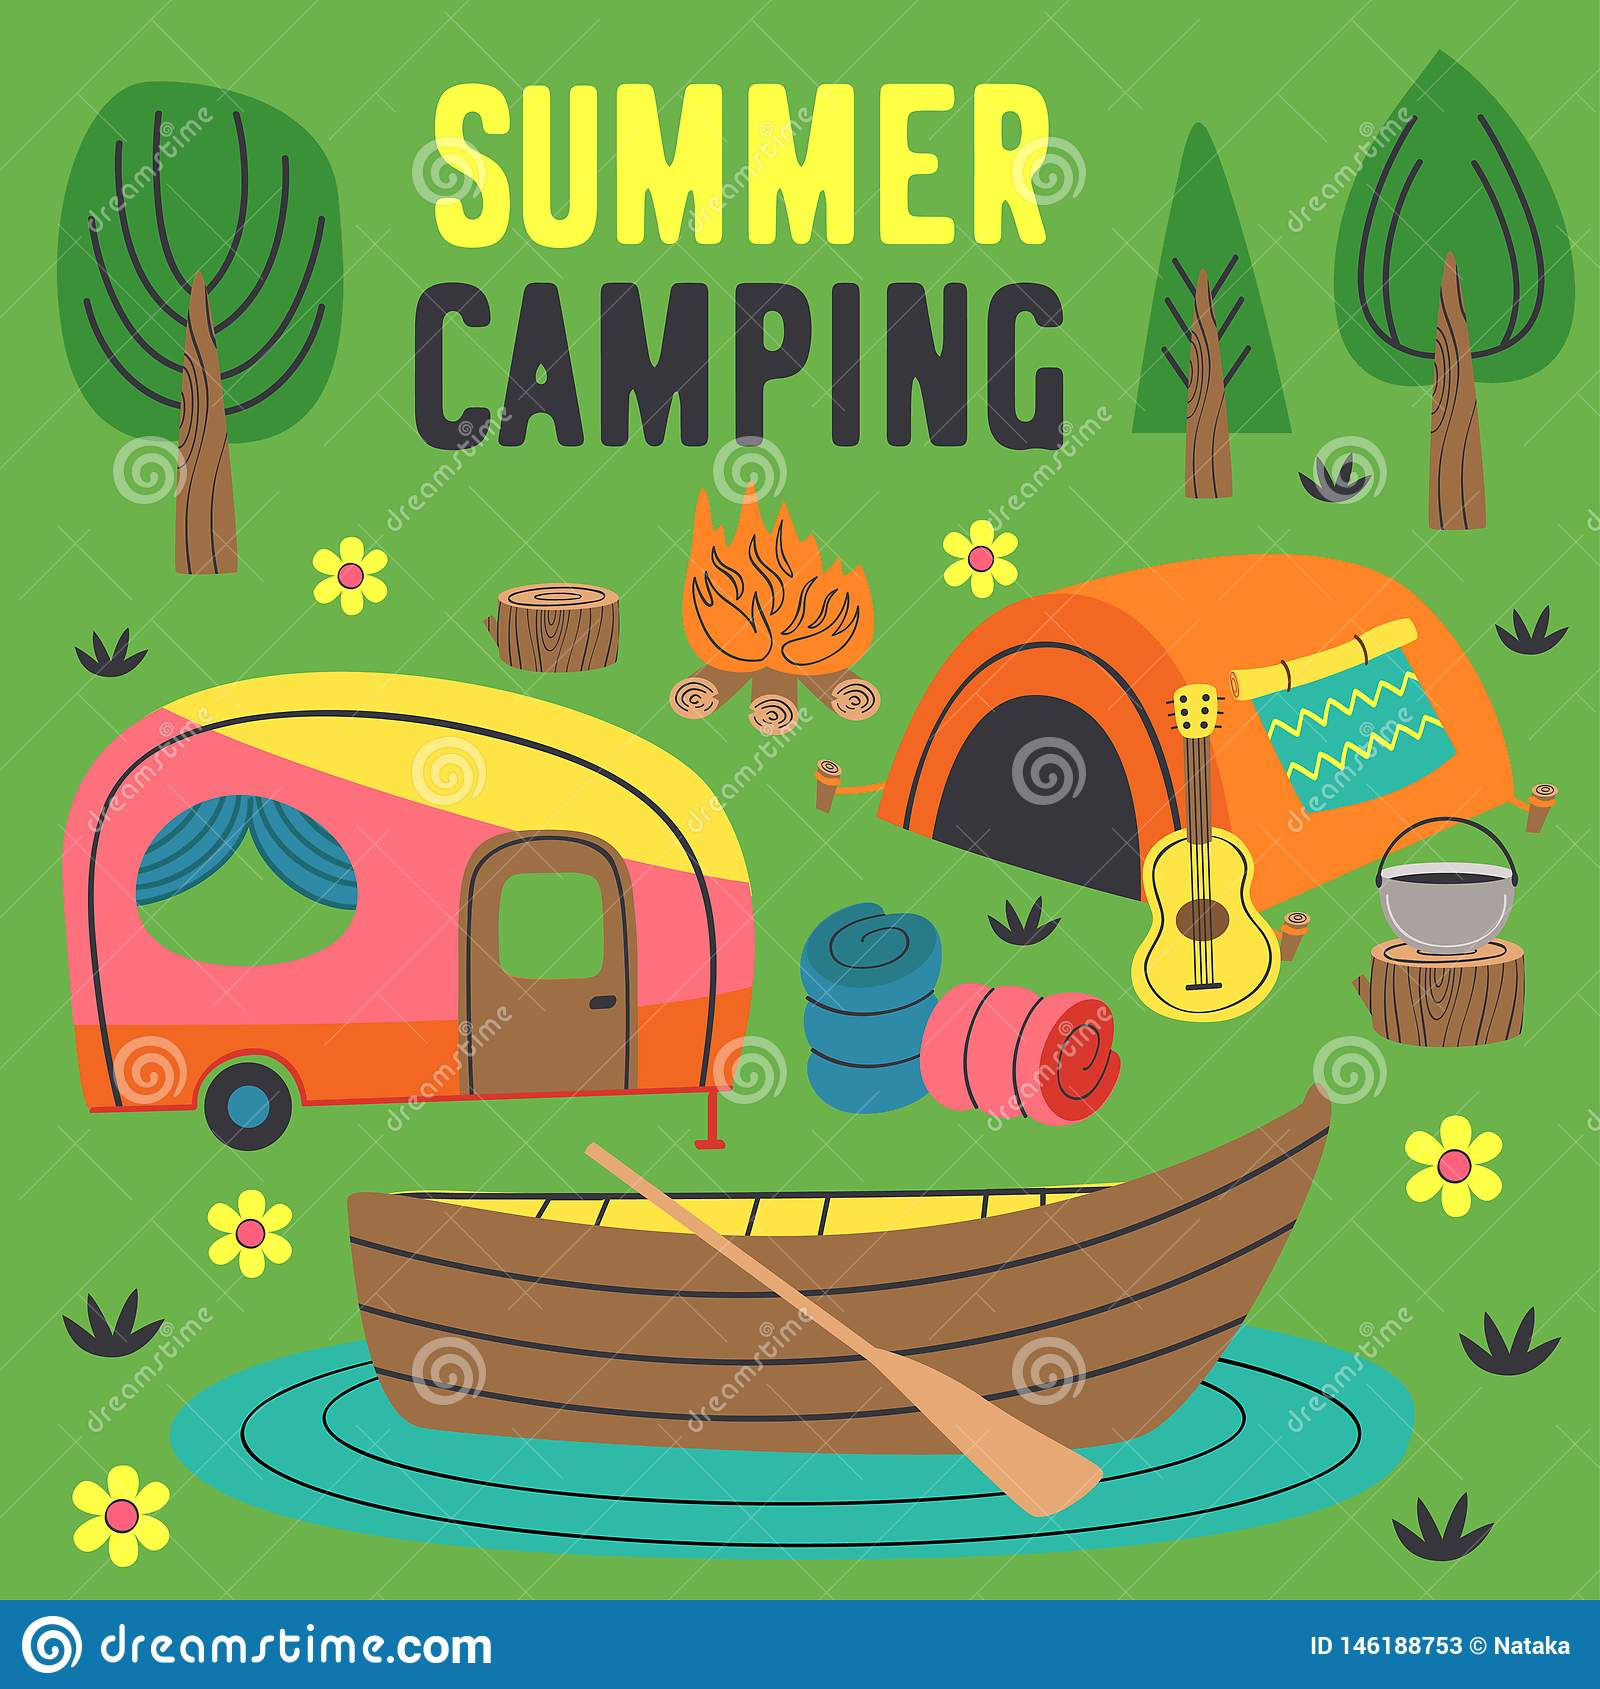 Summer camping poster with a tent, a trailer and a boat